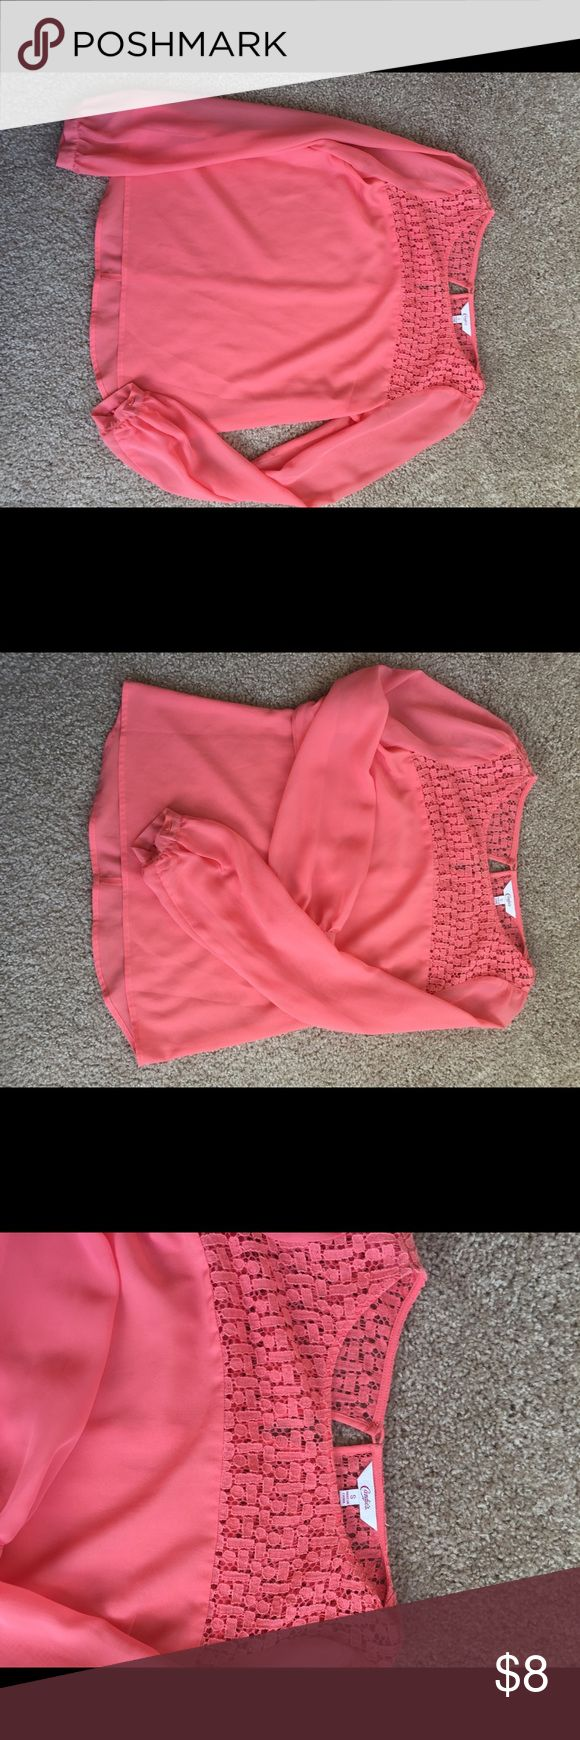 Cute Coral Blouse Size Small like new coral blouse. Sheer sleeves lovely top detail Candie's Tops Blouses